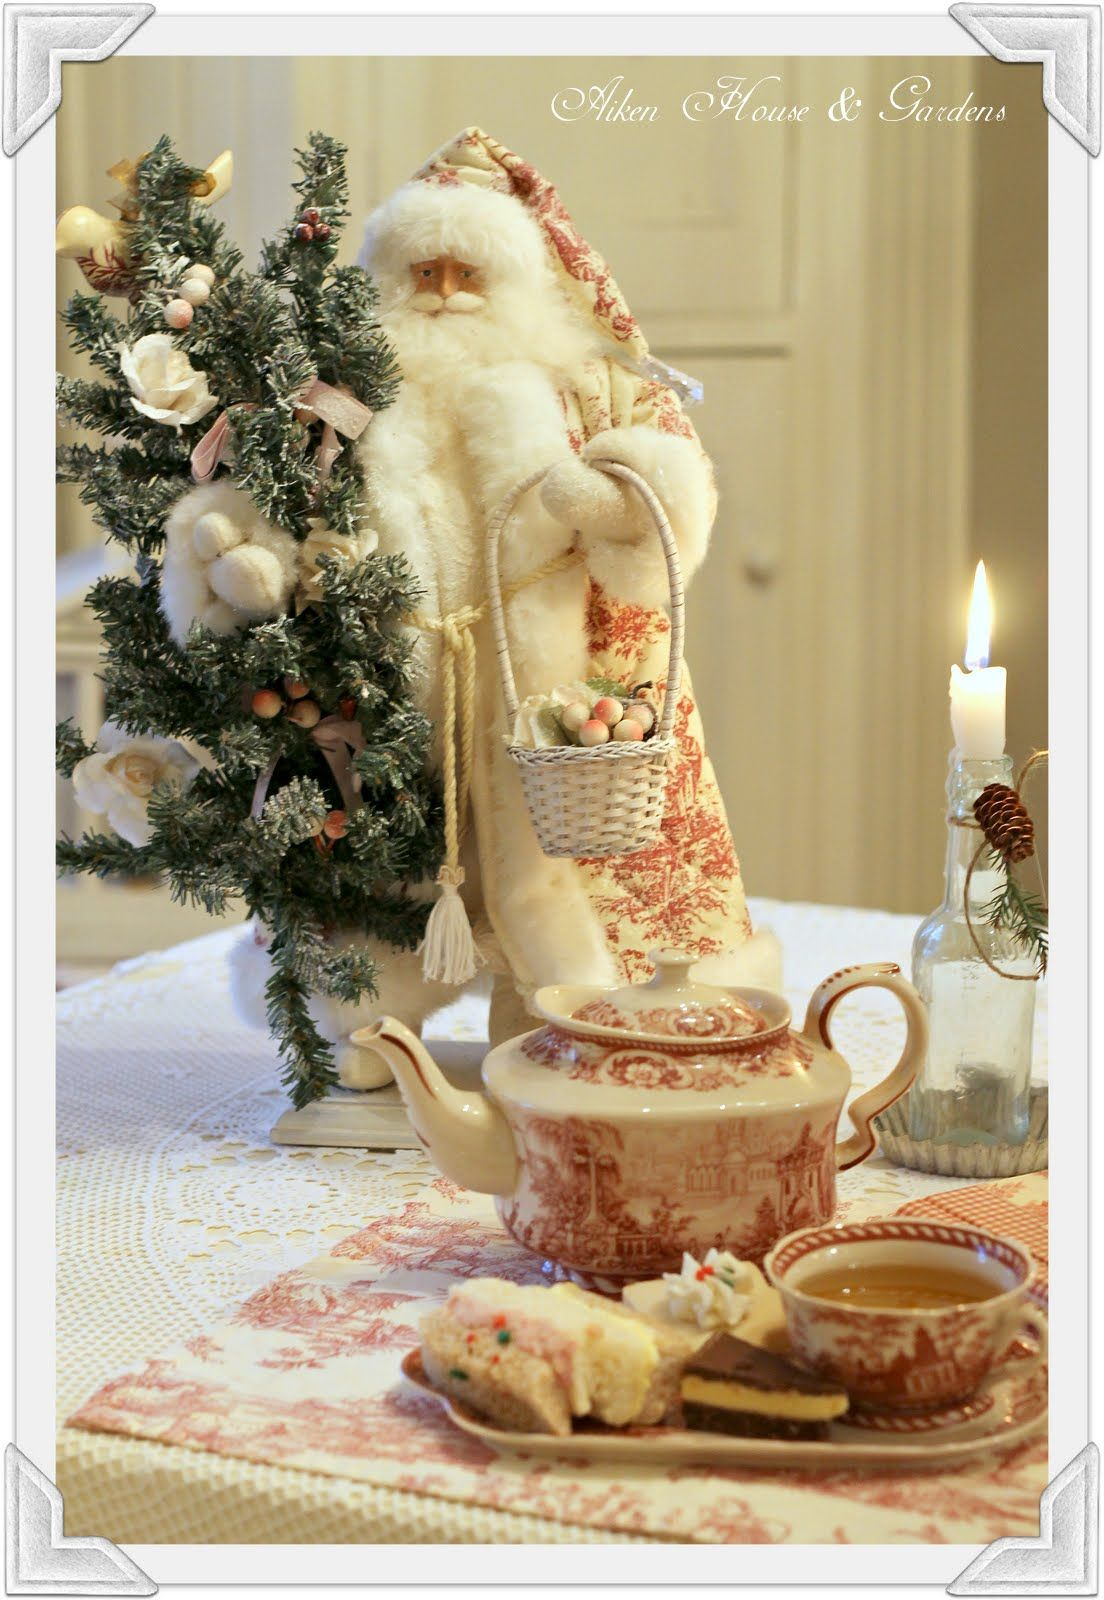 Vintage Santa Tea How I would LOVE to find one of these